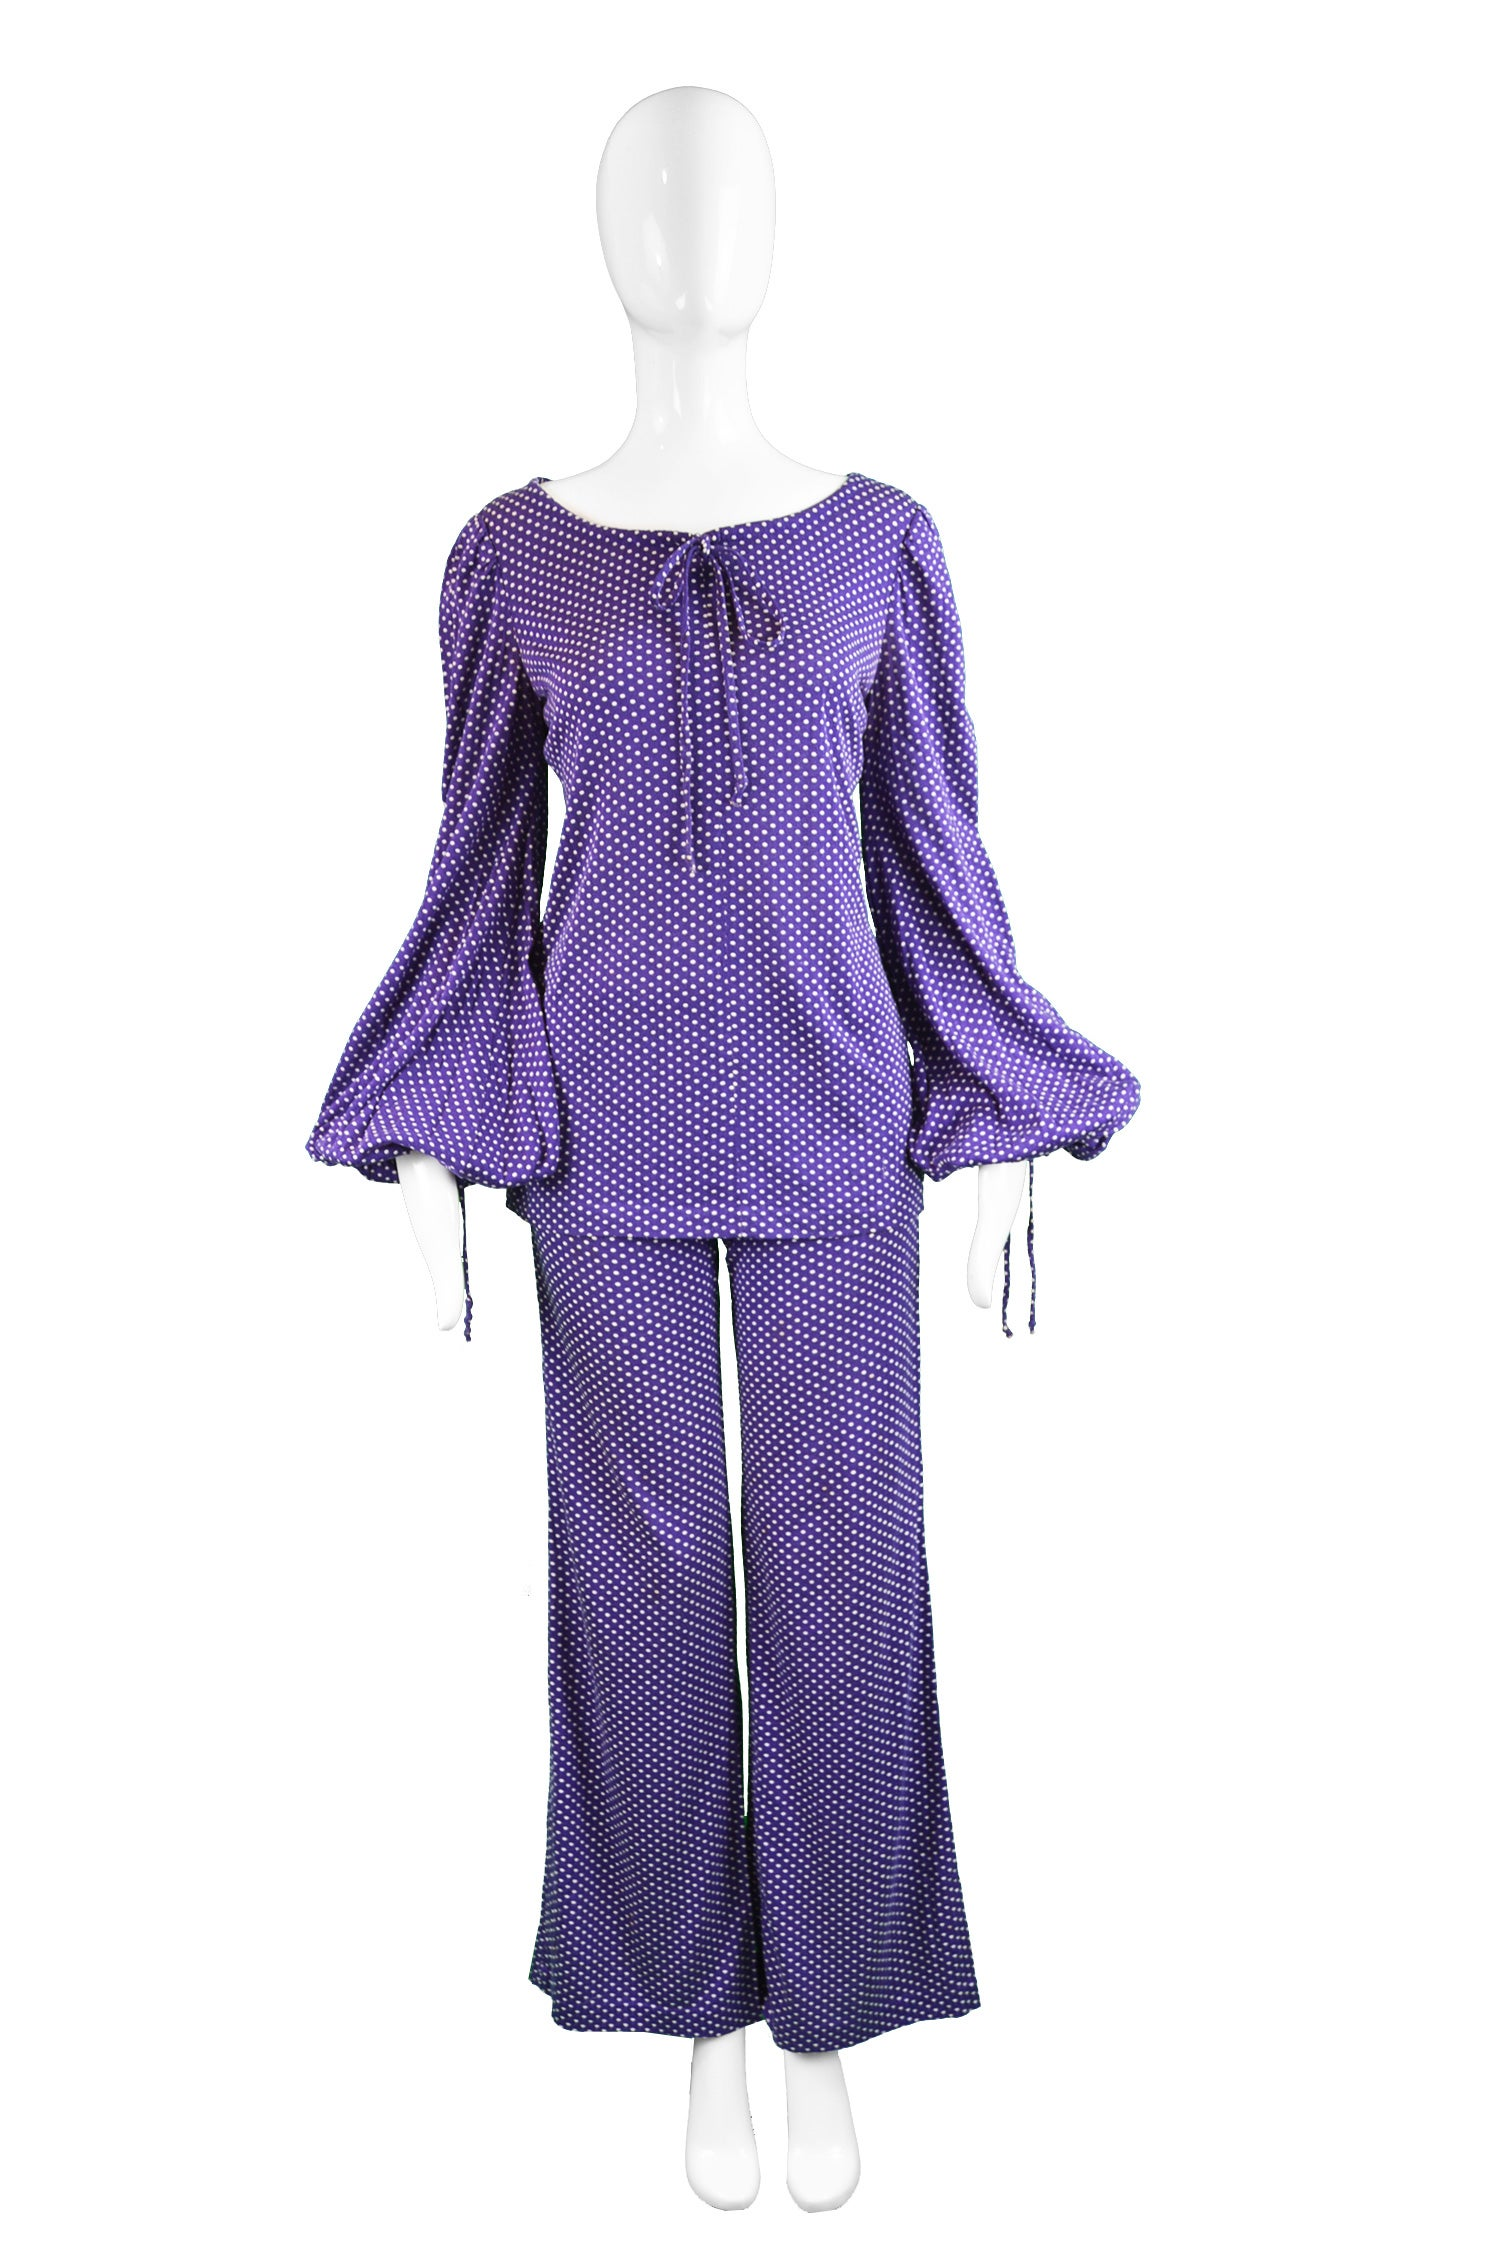 fa56d434b8 Biba Purple Polka Dot Two Piece Tunic Top and Palazzo Pant Suit ...